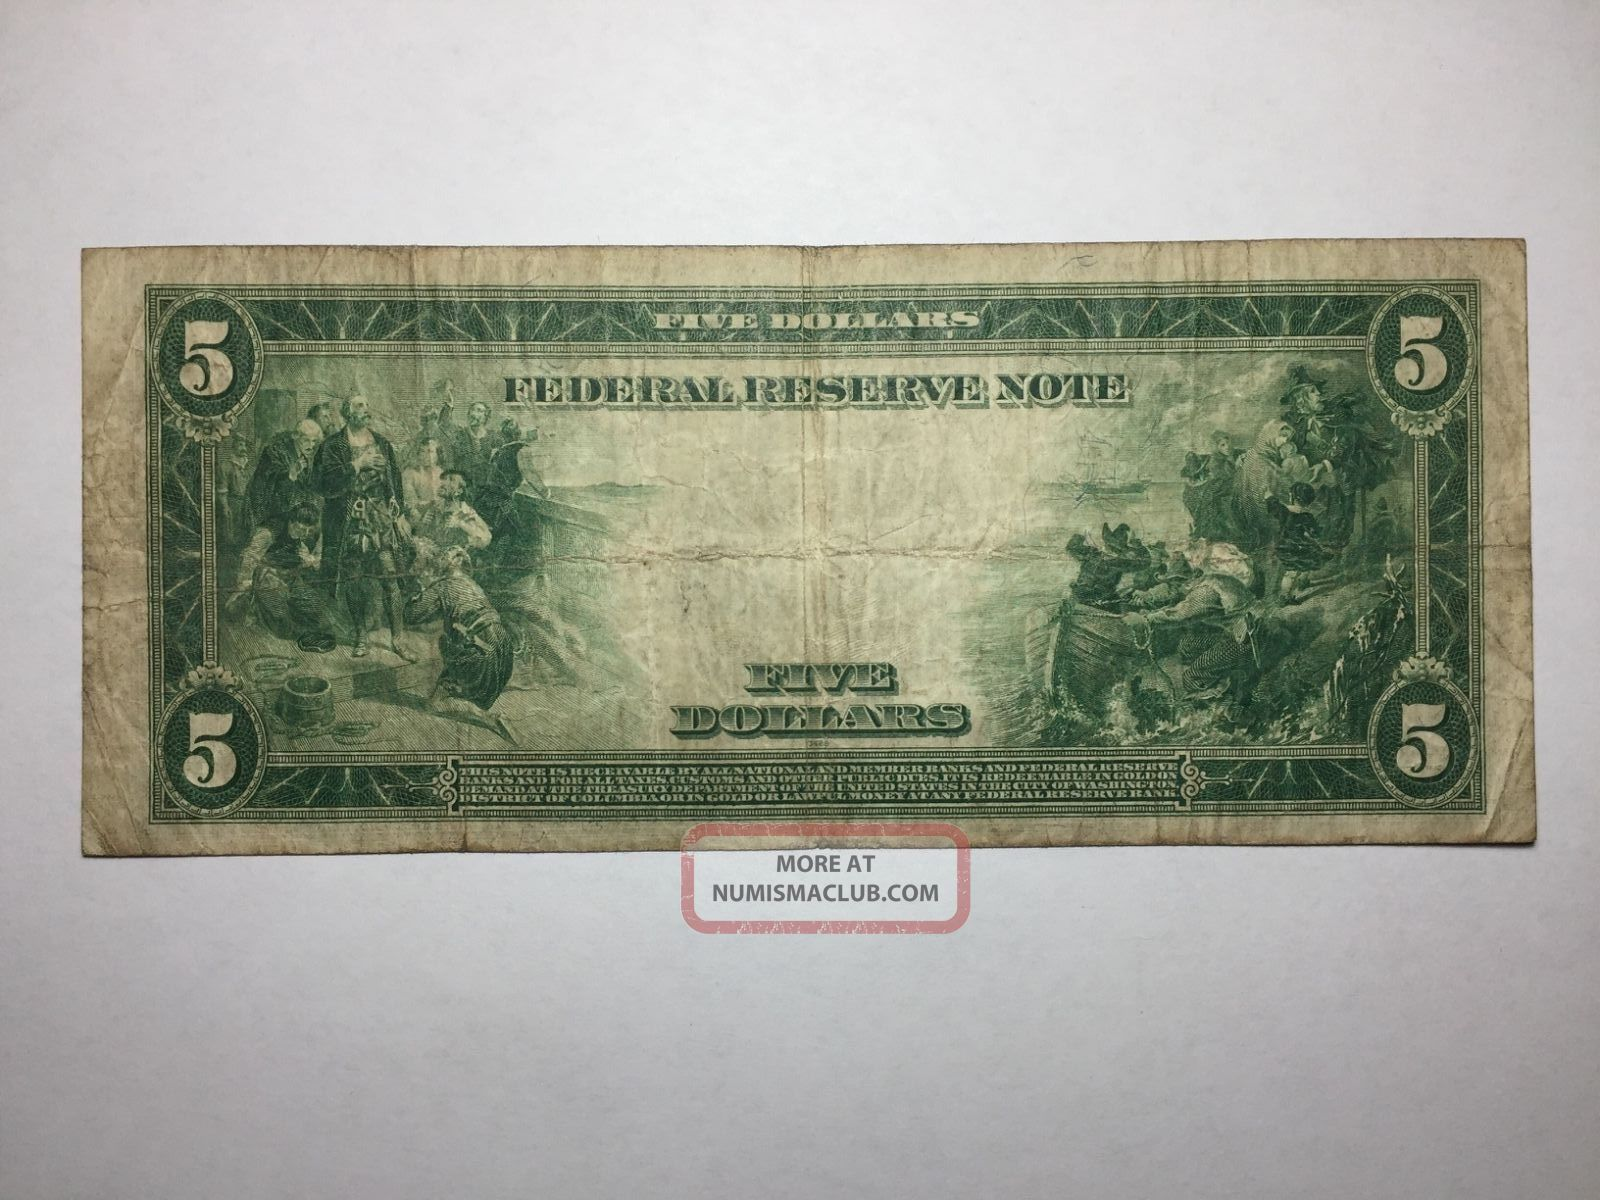 Series 1914 Blue Seal $5 Federal Reserve Note 4 - D Cleveland - Fine - Fr 859 - A Large Size Notes photo